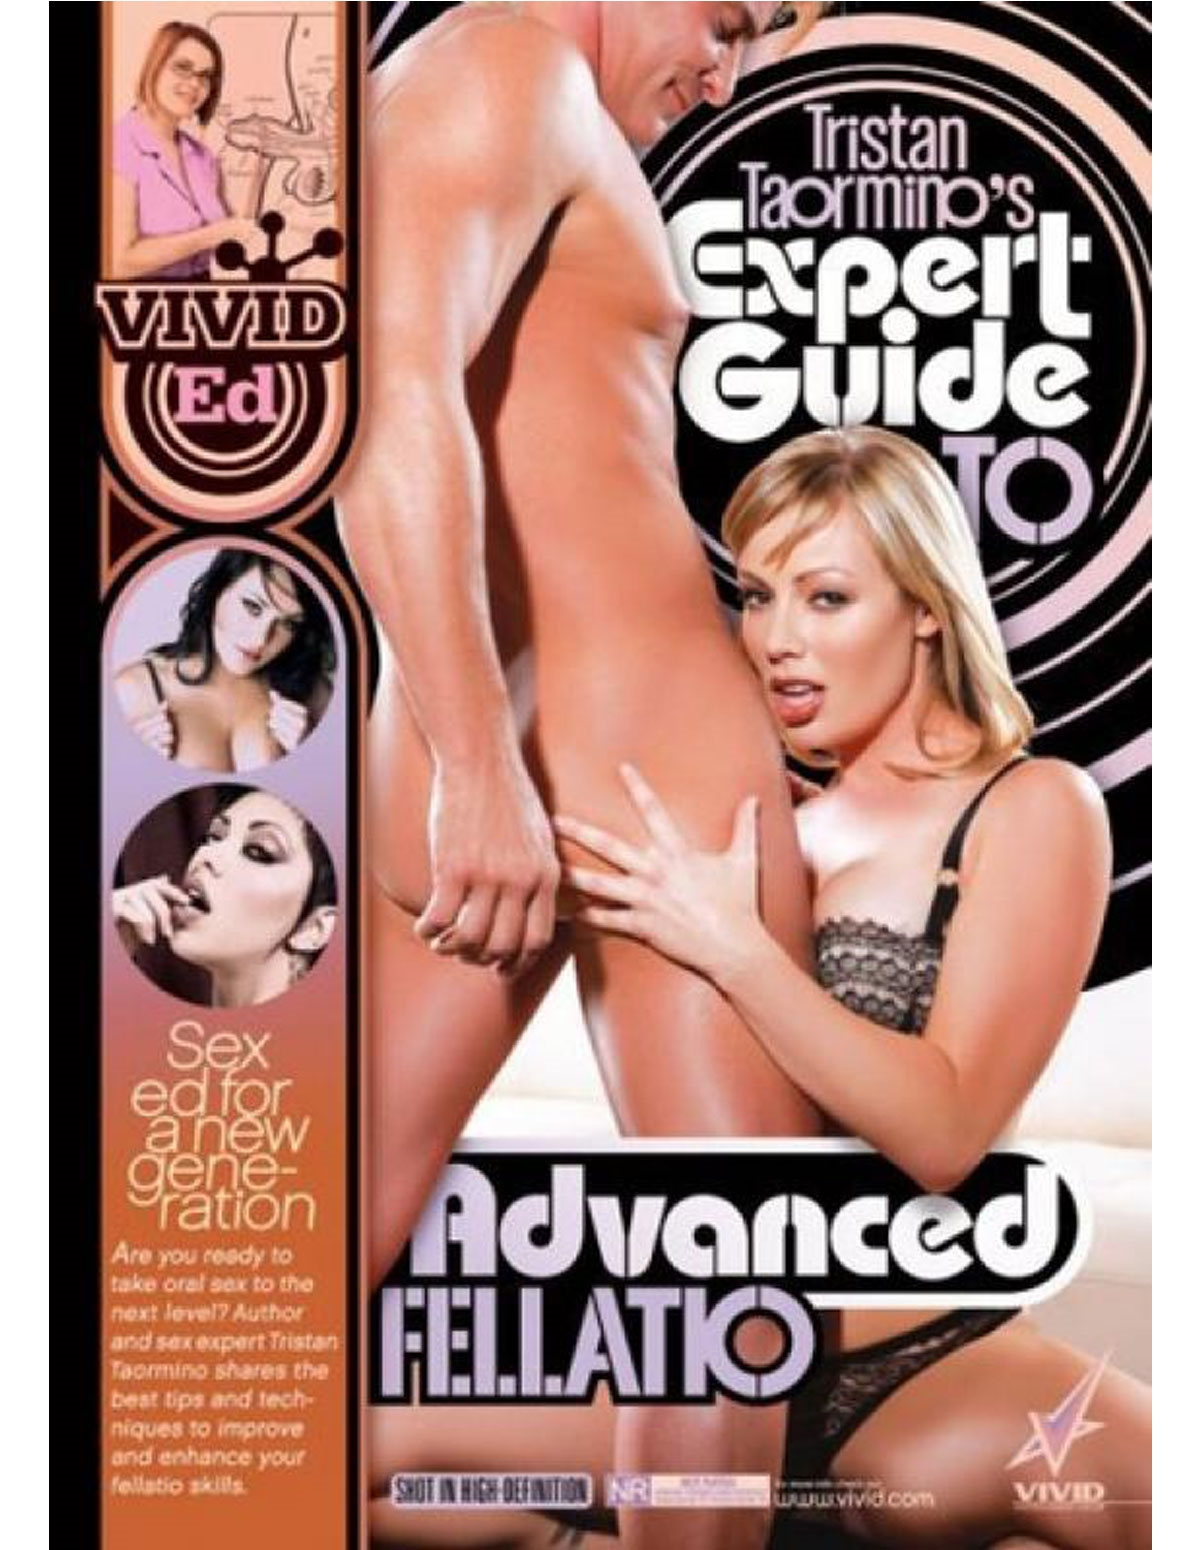 Expert Guide To Advanced Fellatio Dvd